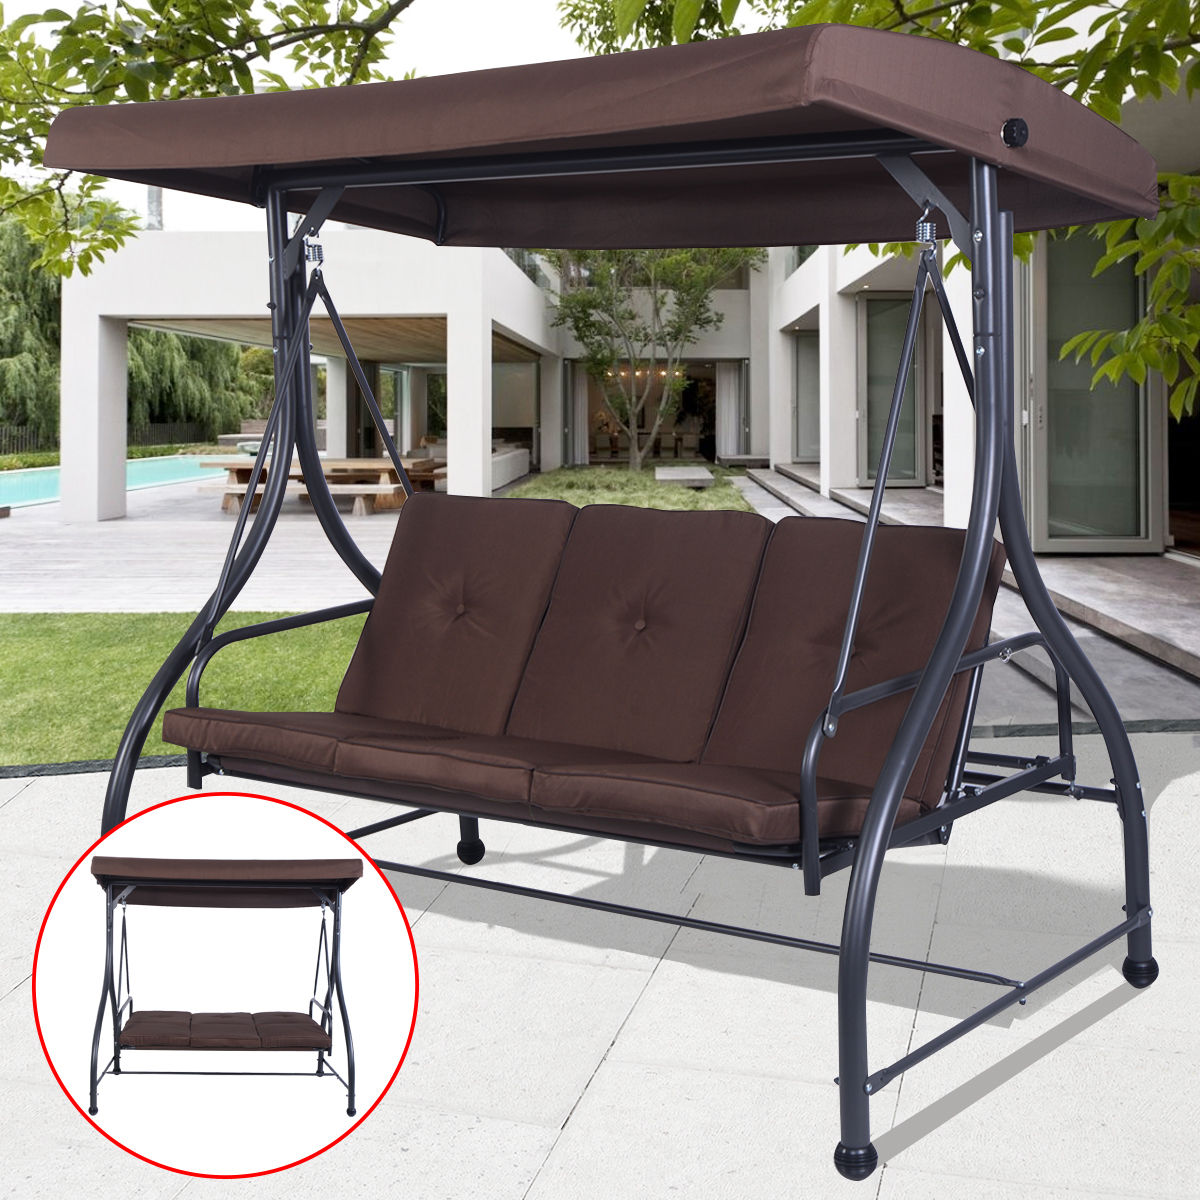 Costway Converting Outdoor Swing Canopy Hammock 3 Seats Patio Deck Furniture Brown by Costway